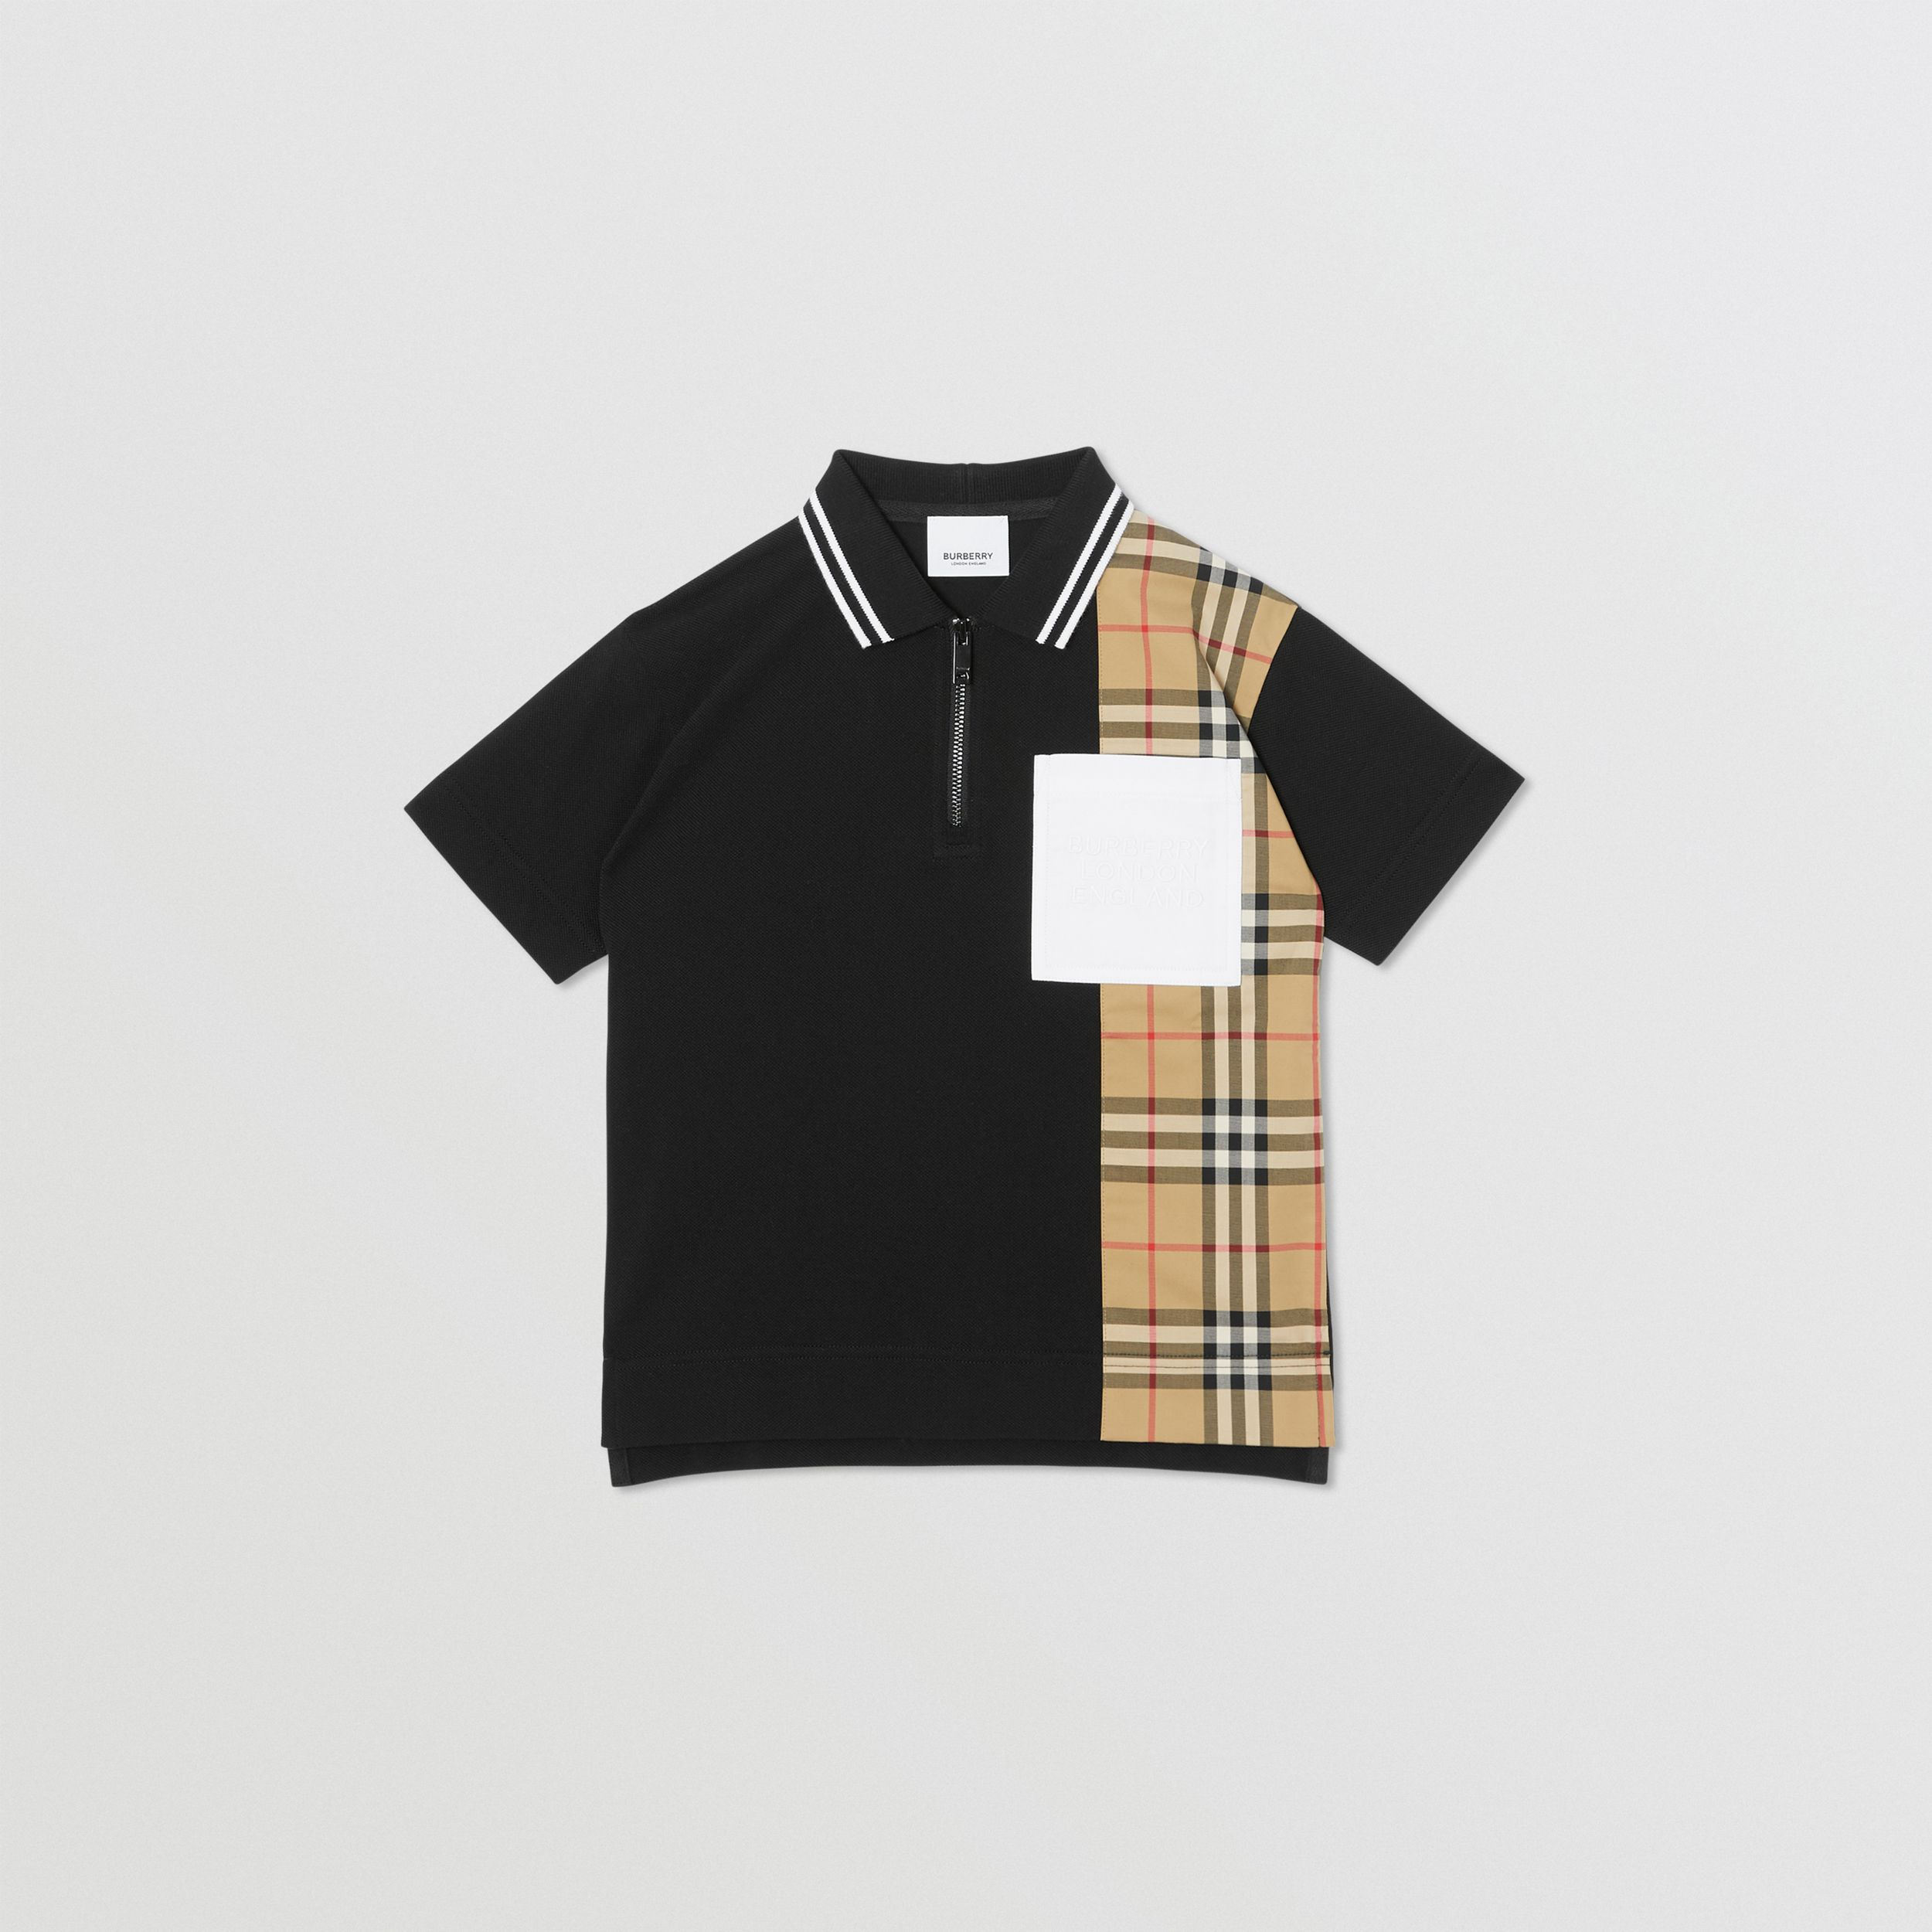 Vintage Check Panel Cotton Zip-front Polo Shirt in Black | Burberry - 1